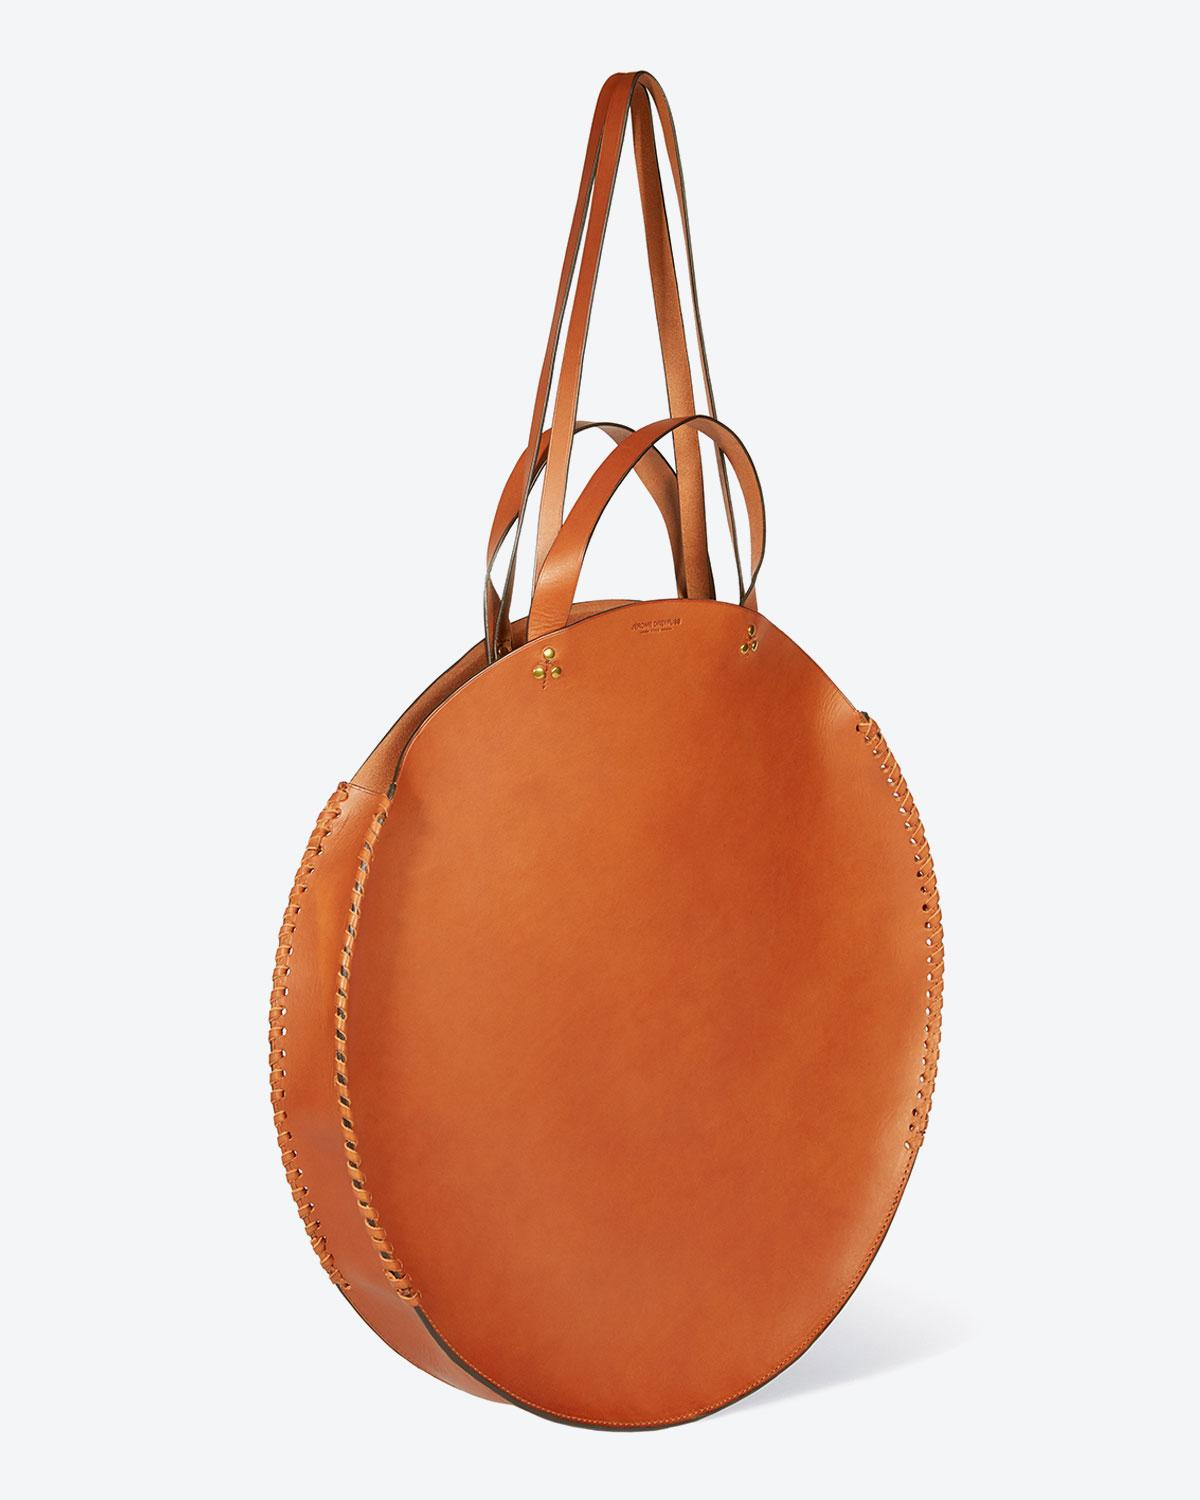 Jérôme Dreyfuss Collection Hector - Cowskin - Gold